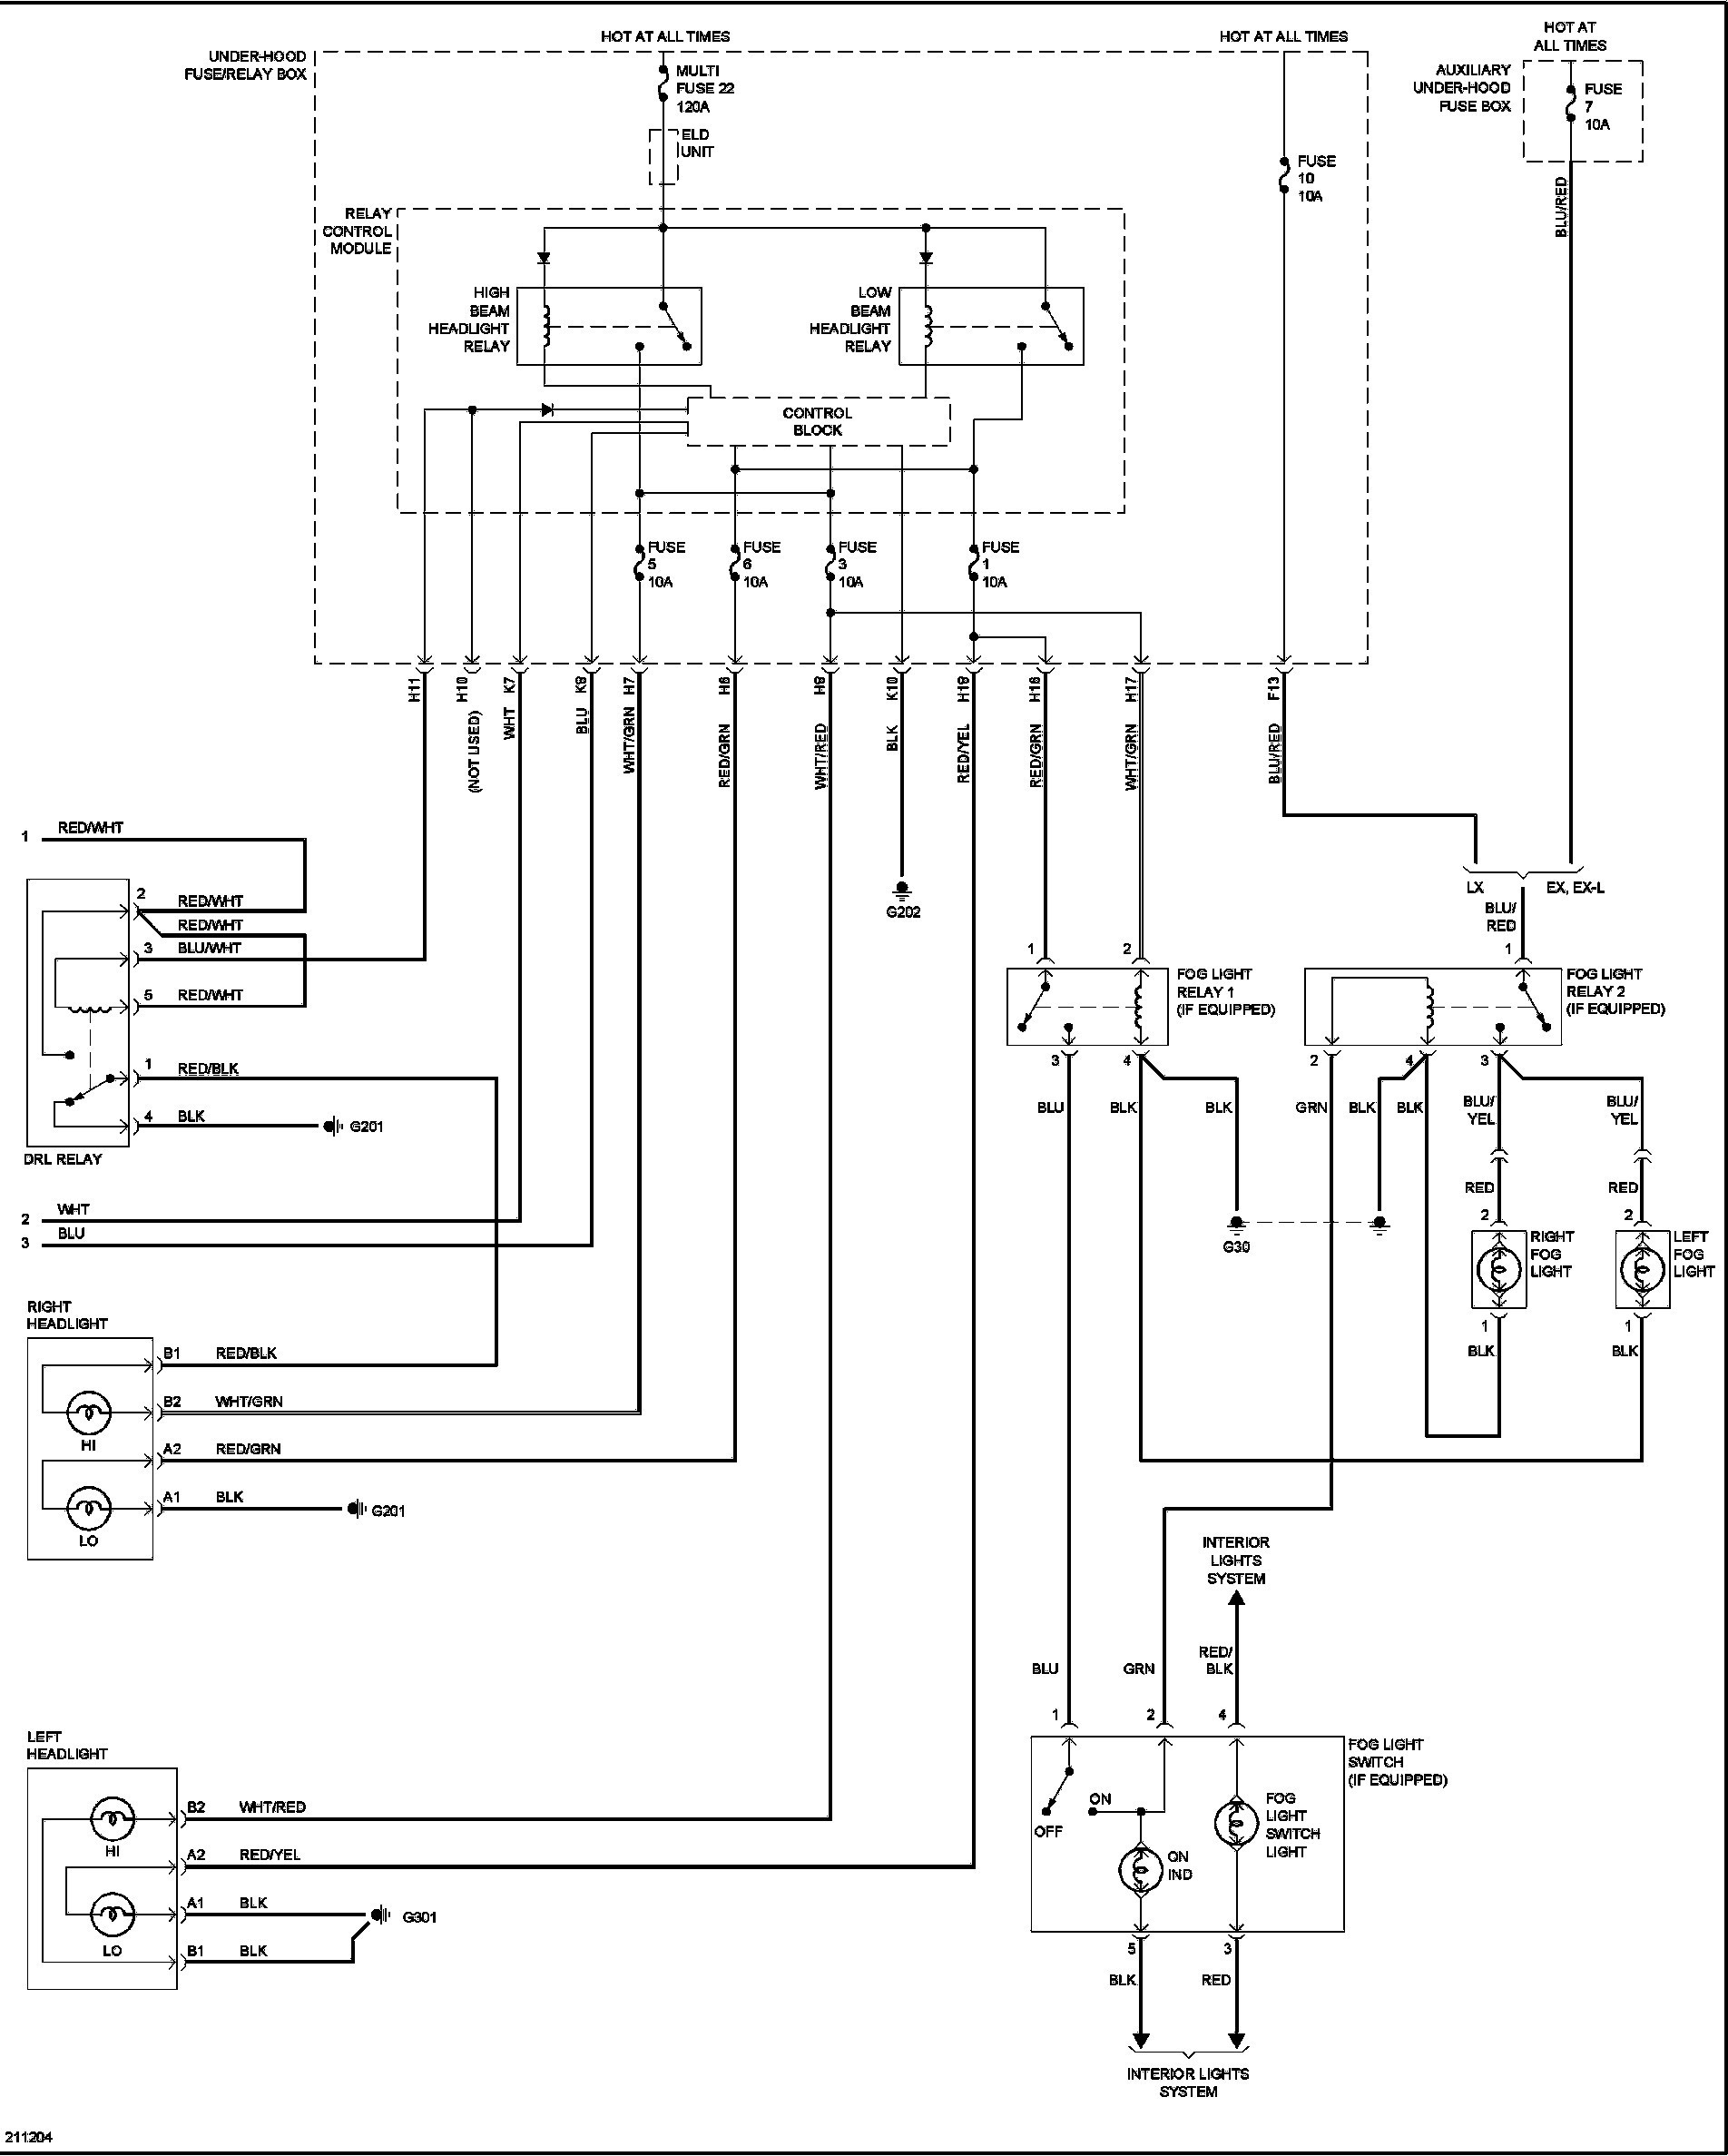 Accord Ac Wiring Diagram For Keyless Install on